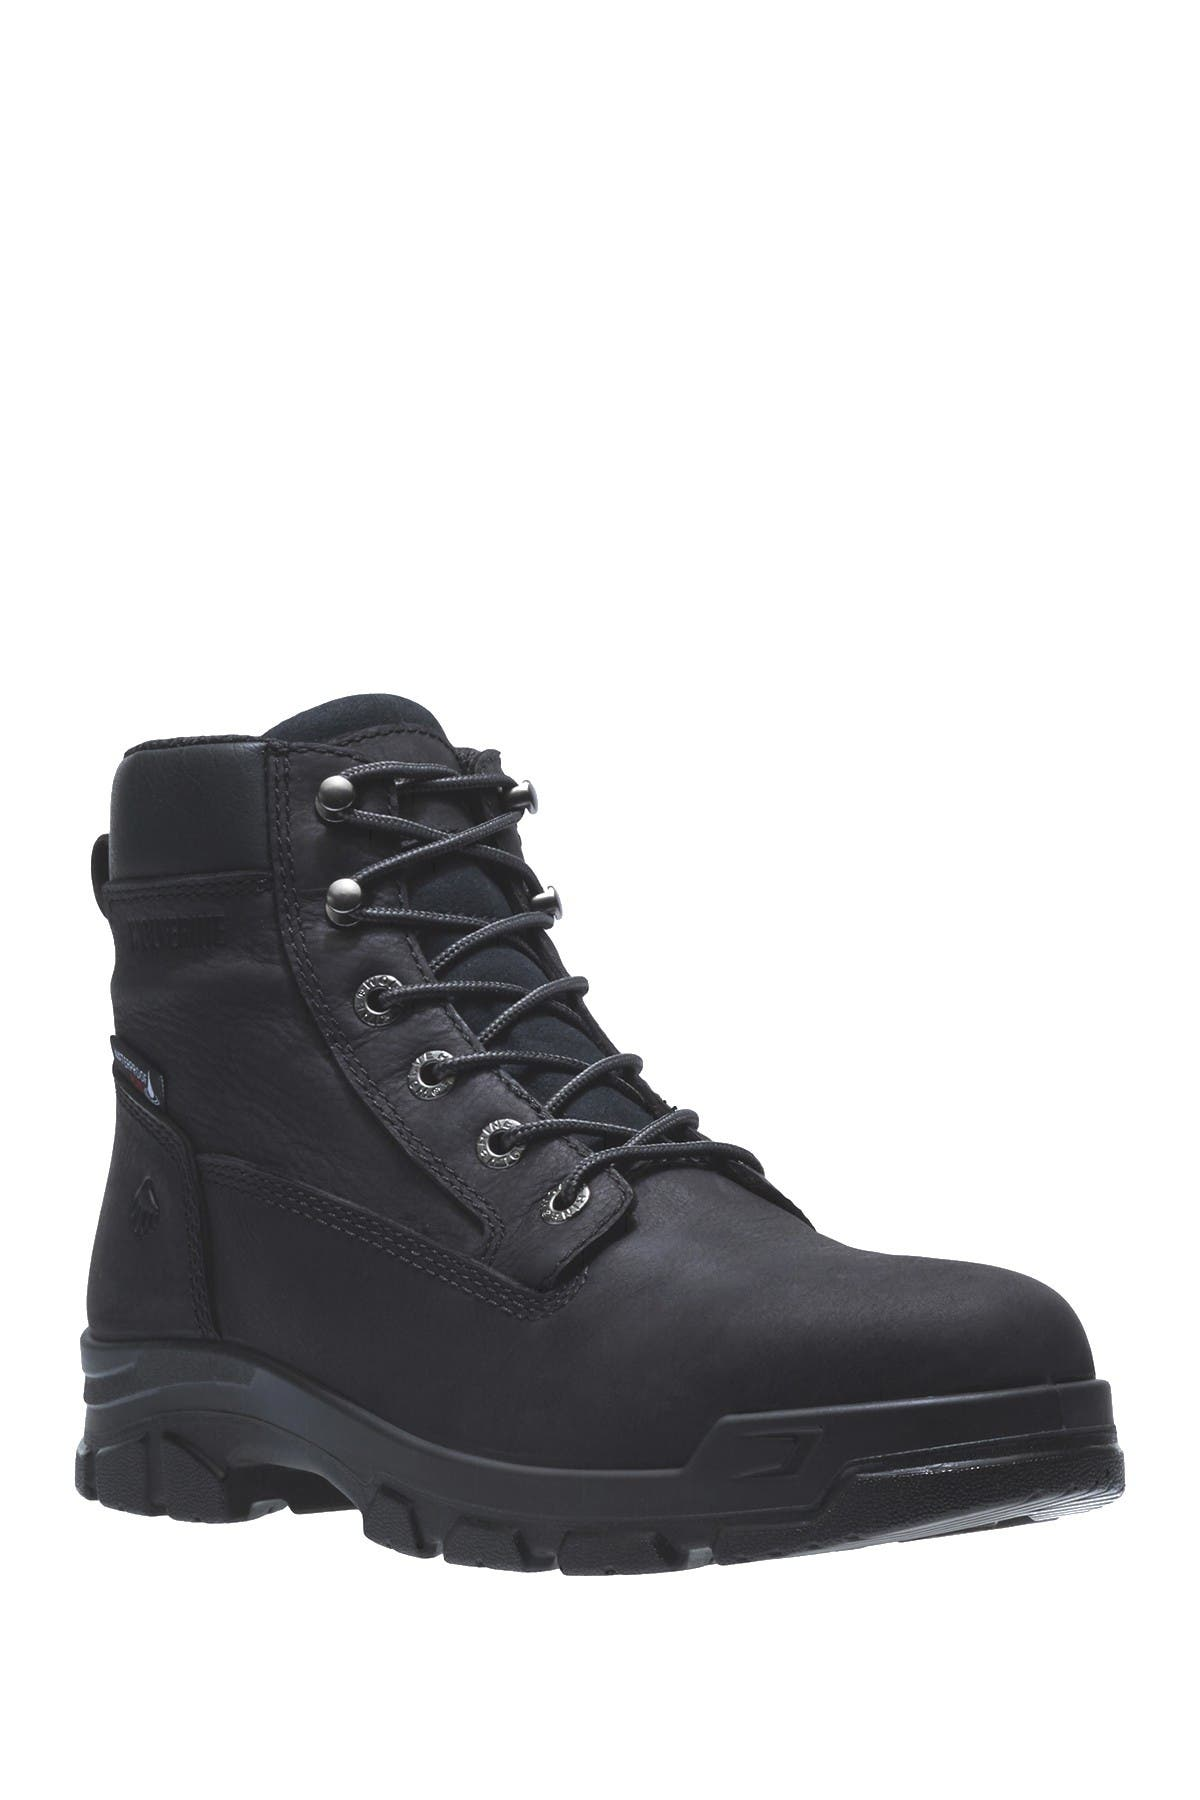 Image of Wolverine Chainhand Waterproof Leather Work Boot - Extra Wide Width Available